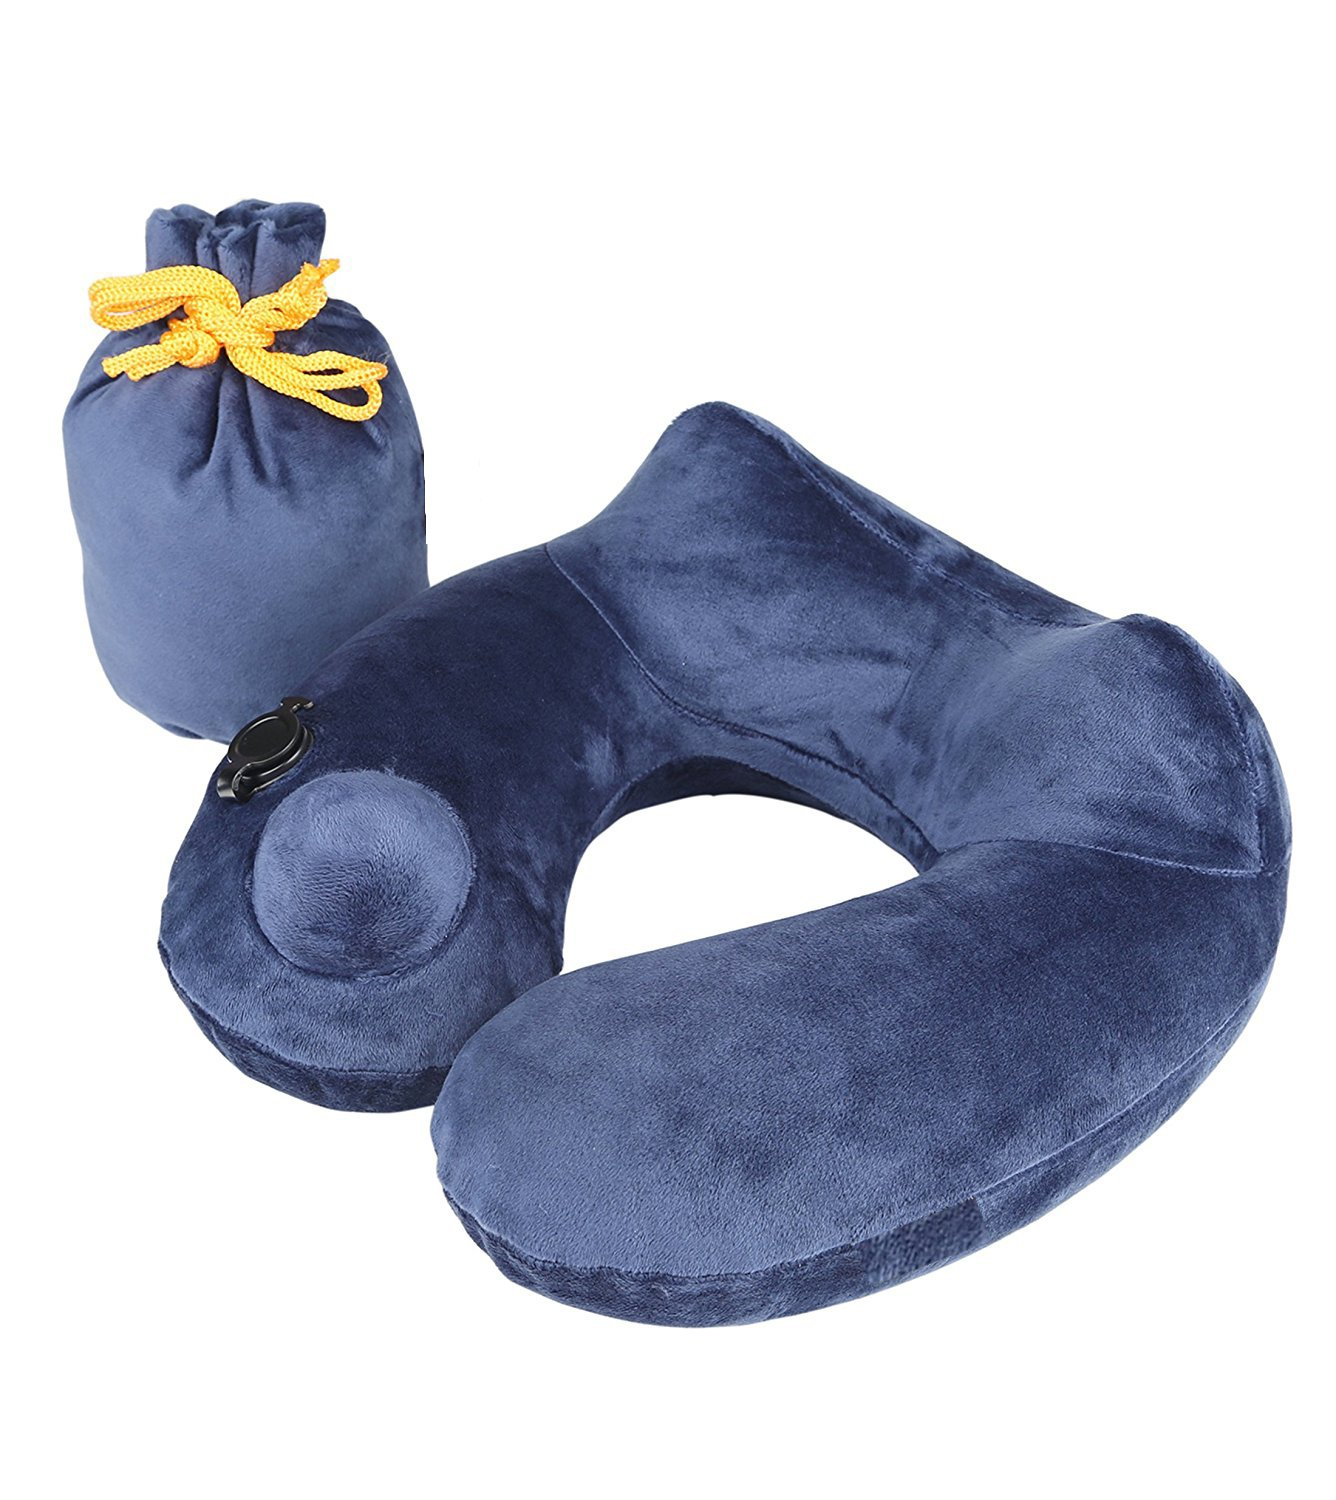 *FLASH SALE* Travel Pillow Luxuriously Soft Inflatable Neck Pillow Support-Compact & Lightweight for Sleeping on Airplane, Car, and Train . Carrying Bag-Soft & Ergonomic One Size Design